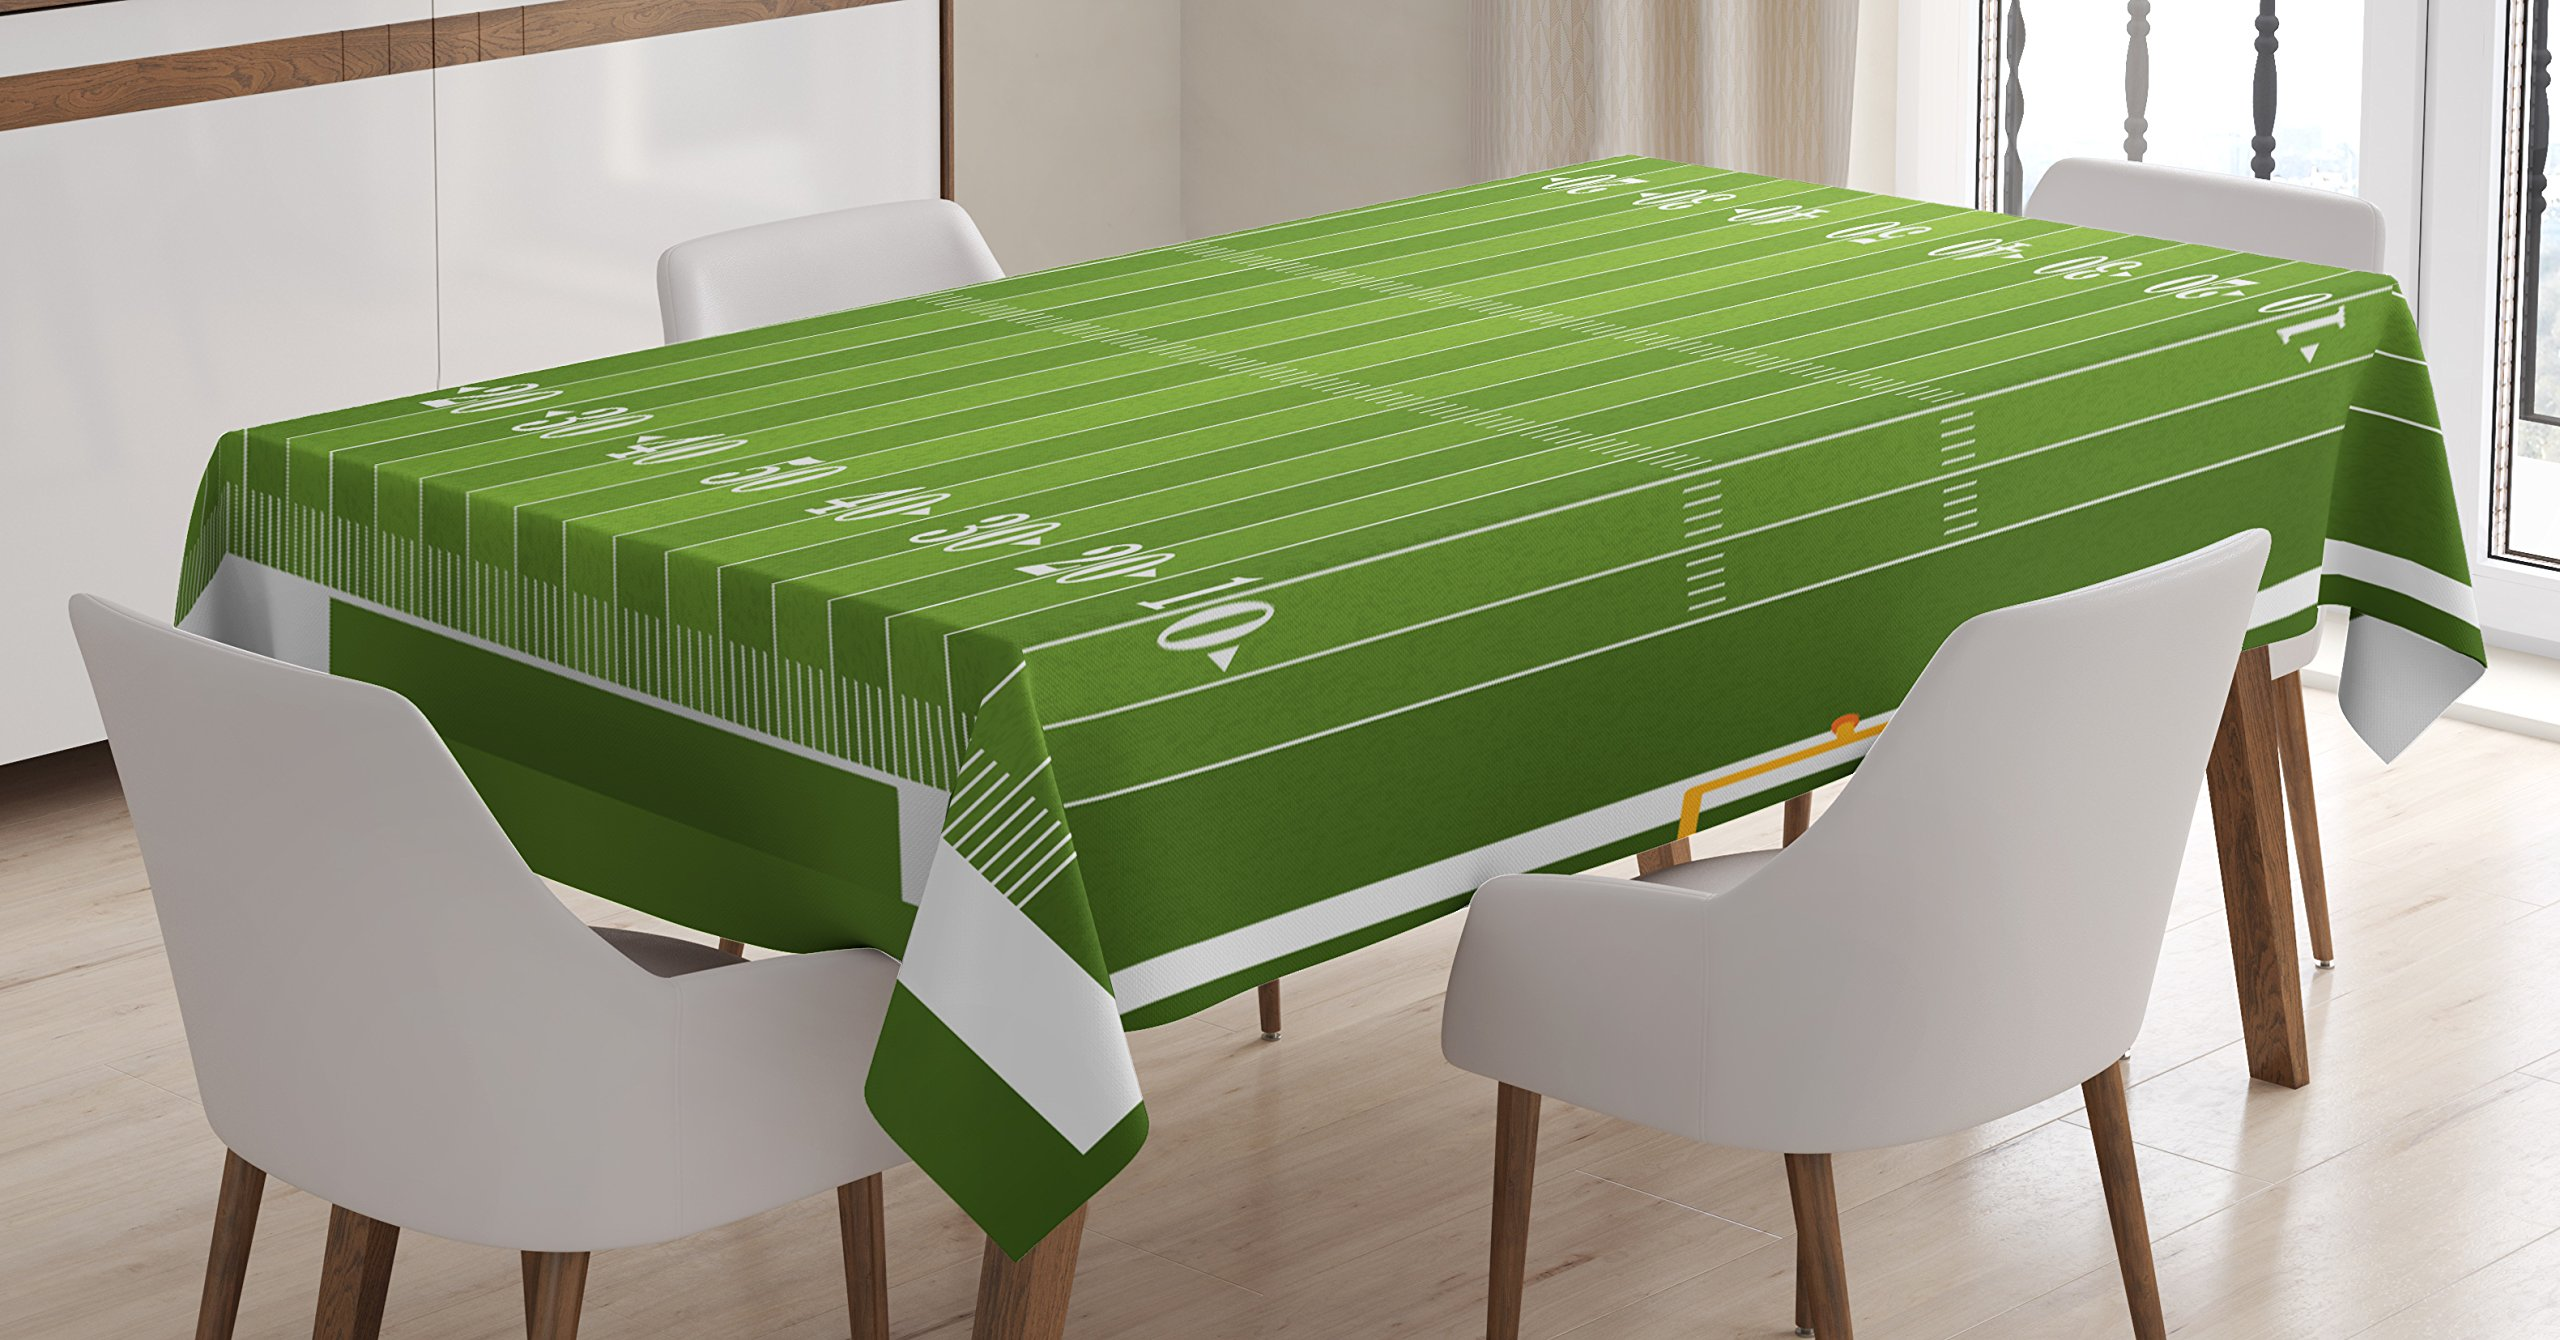 Ambesonne Football Tablecloth by, Sports Field in Green Gridiron Yard Competitive Games College Teamwork Superbowl, Dining Room Kitchen Rectangular Table Cover, 60 W X 84 L Inches, Green White